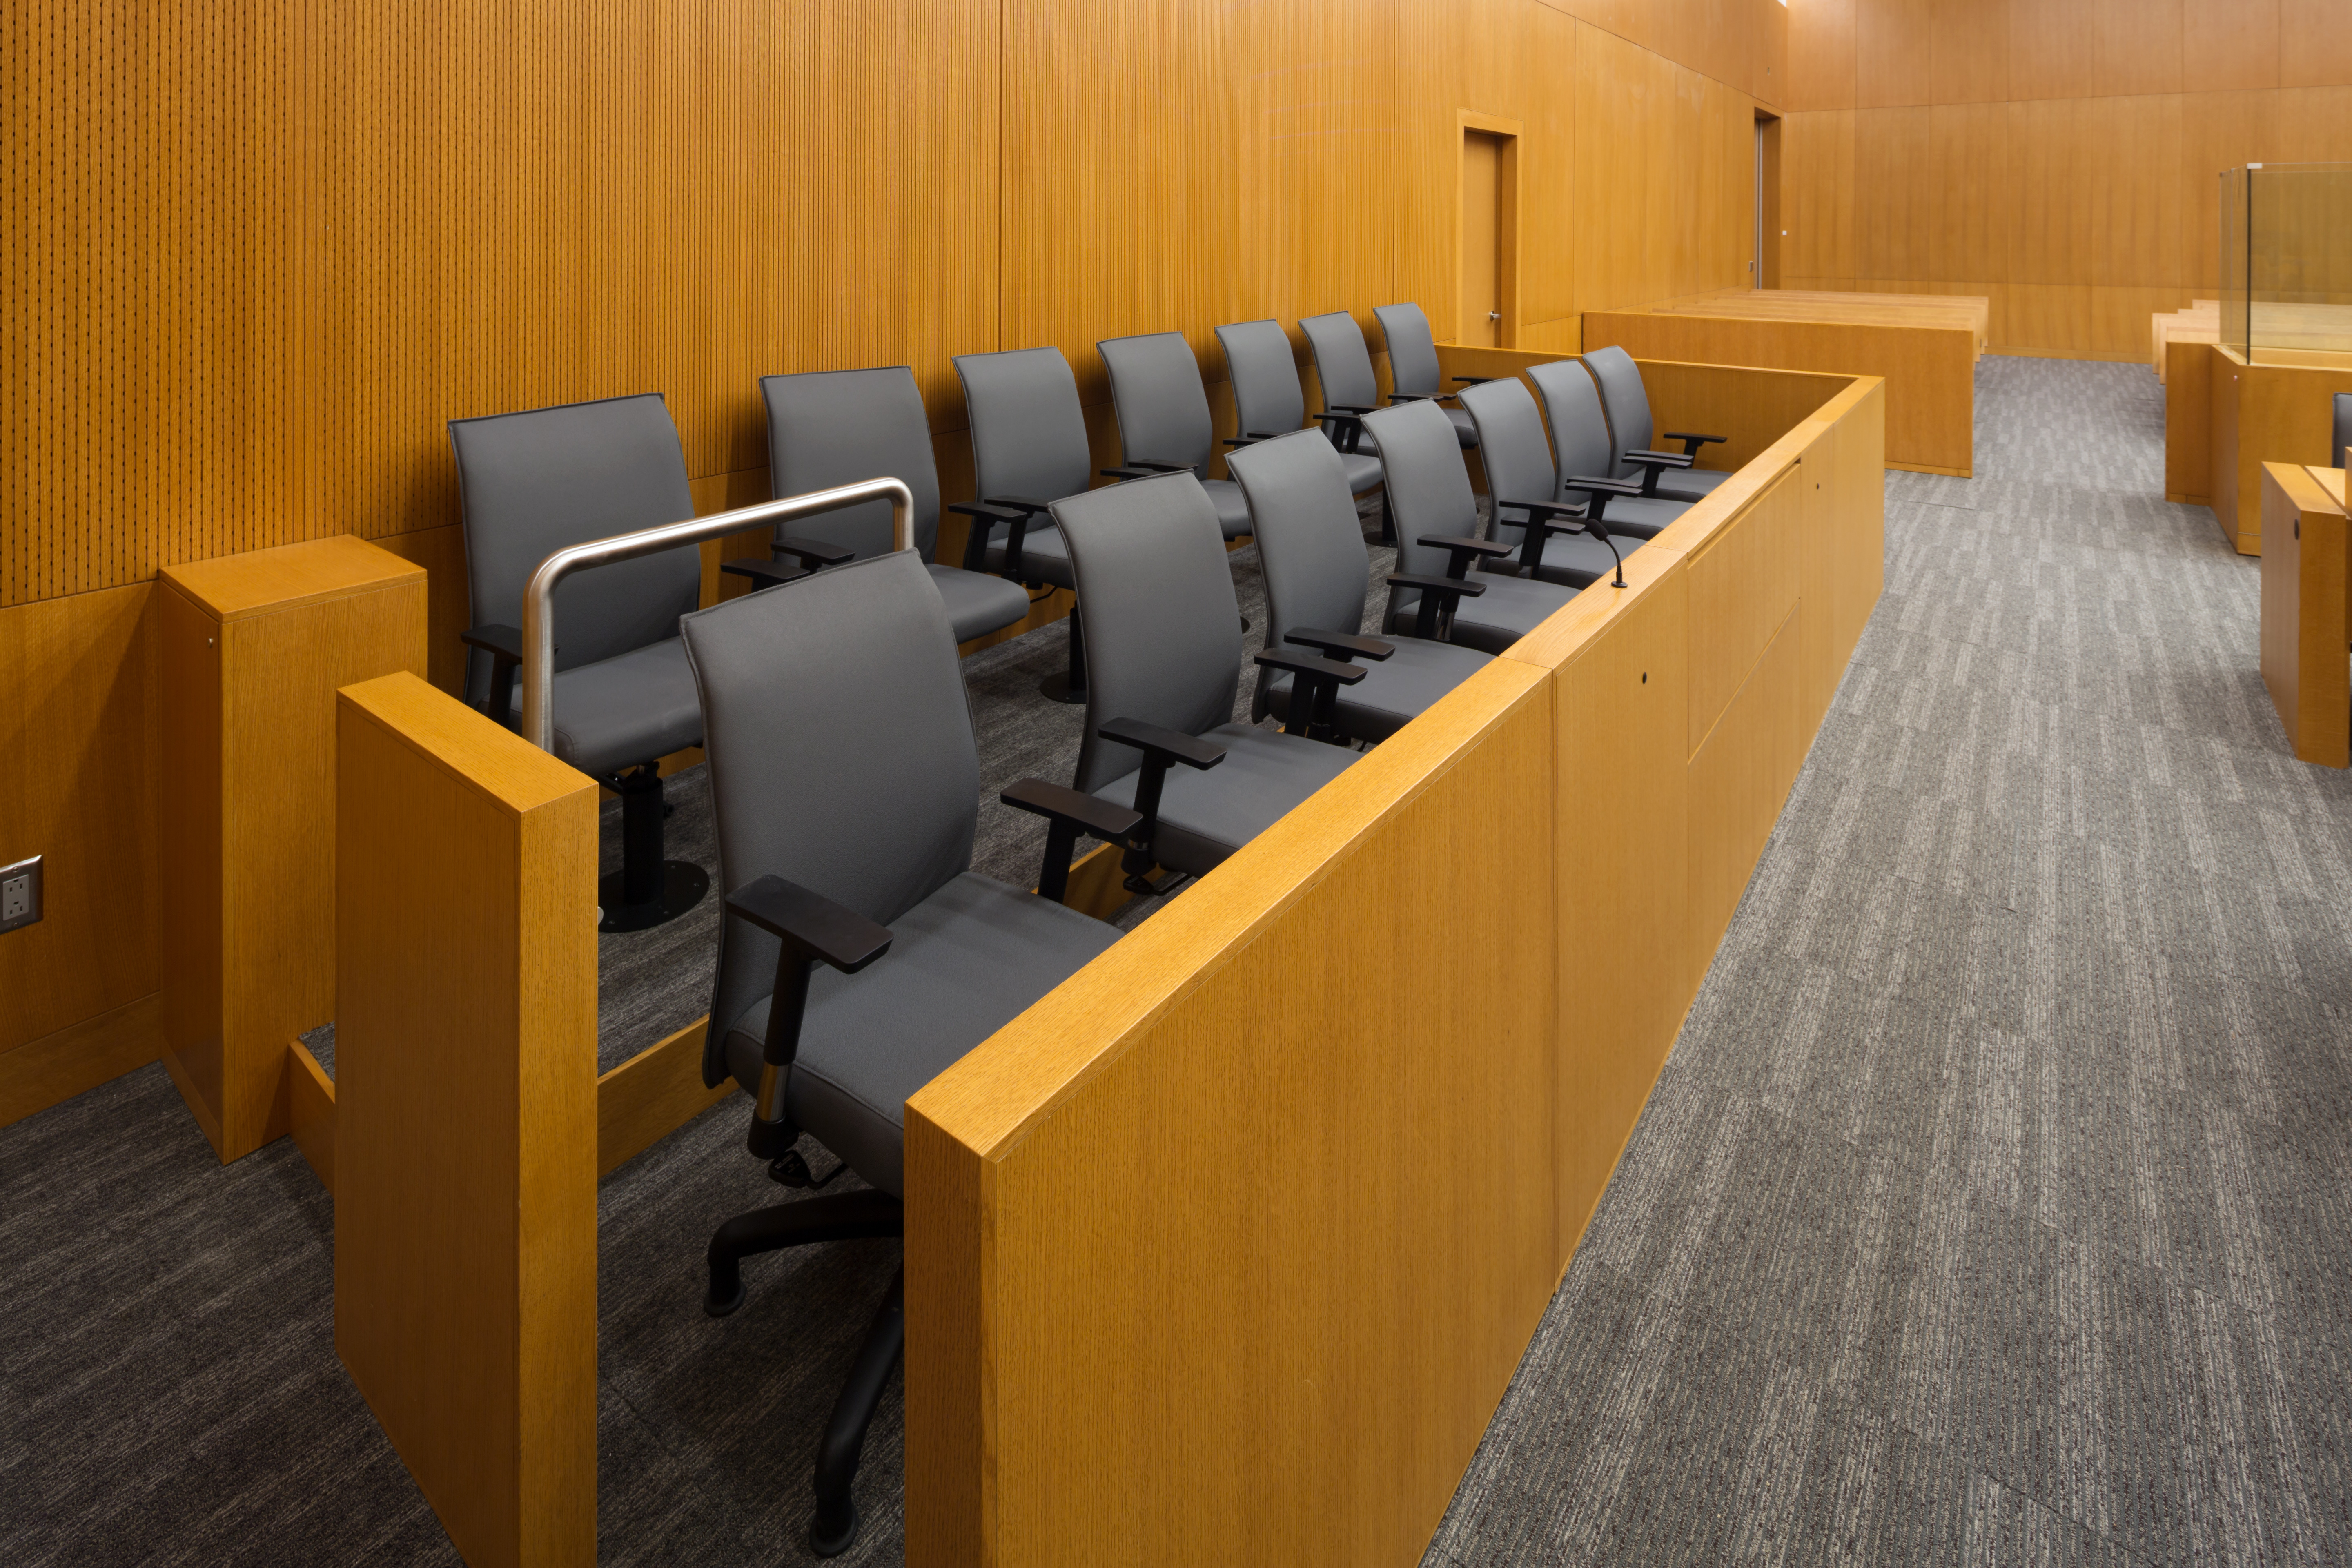 Jury Box in a court room. Photo courtesy of DollarPhotoClub.com